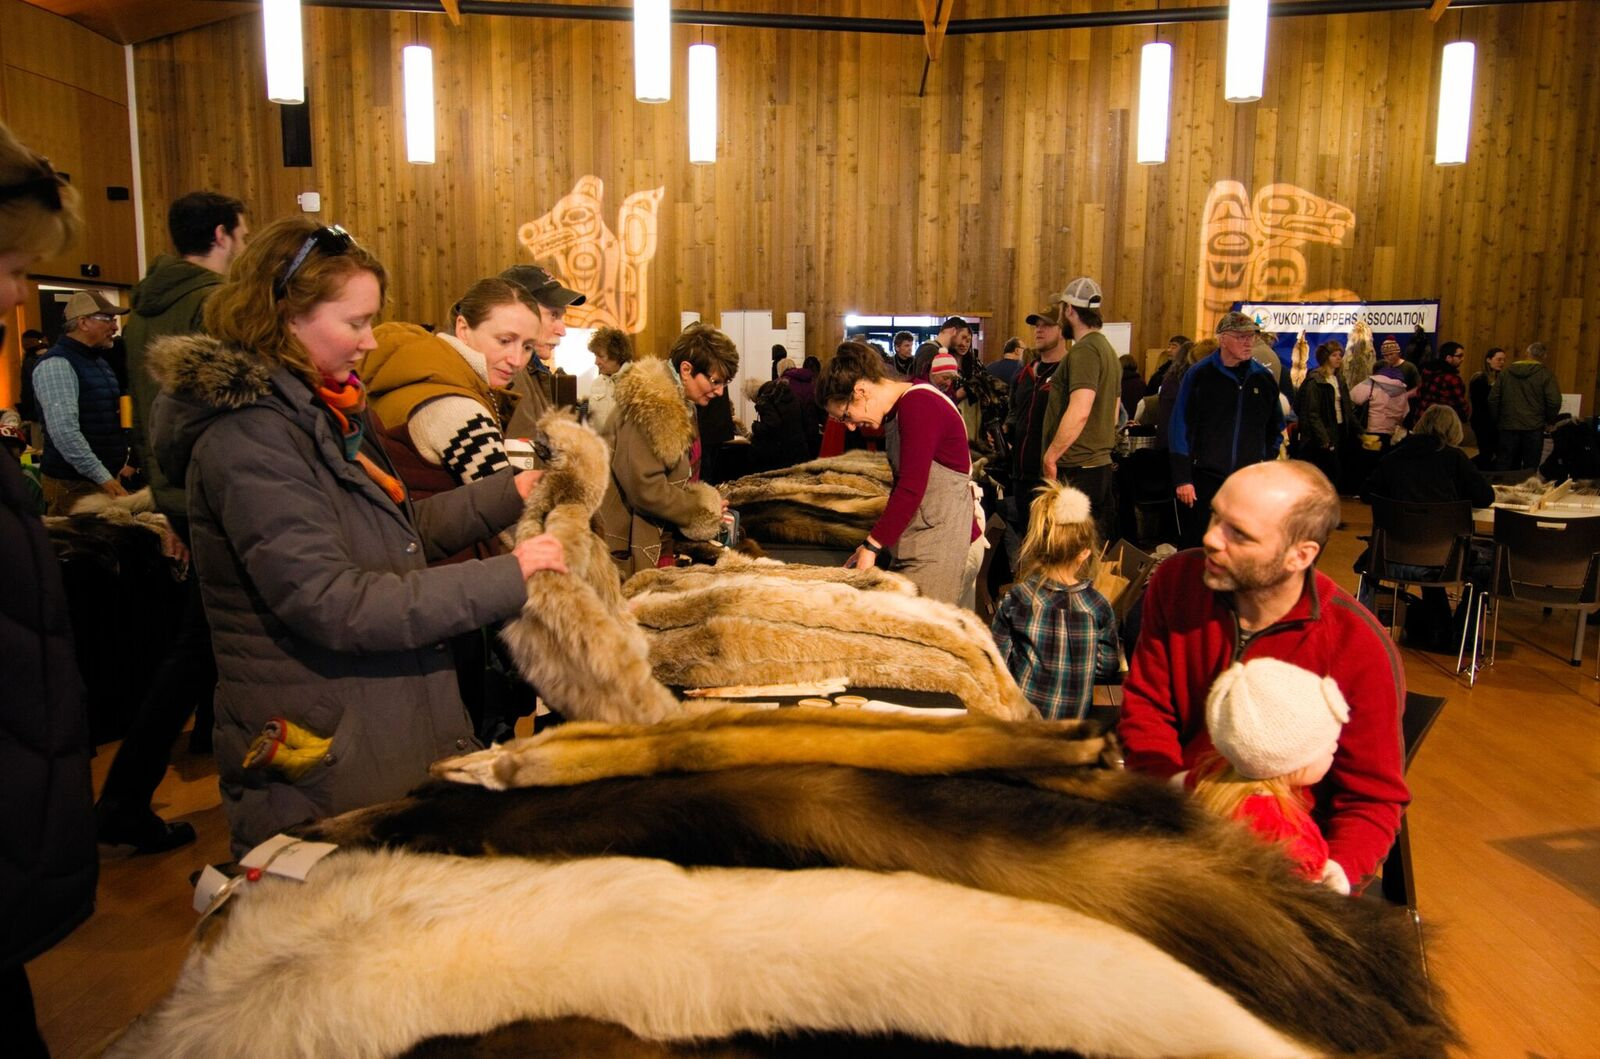 The UnFURled celebration held at the Kwanlin Dün Cultural Centre on March 10 gave trappers a chance to sell their furs to the public. Photo: Christian Kuntz